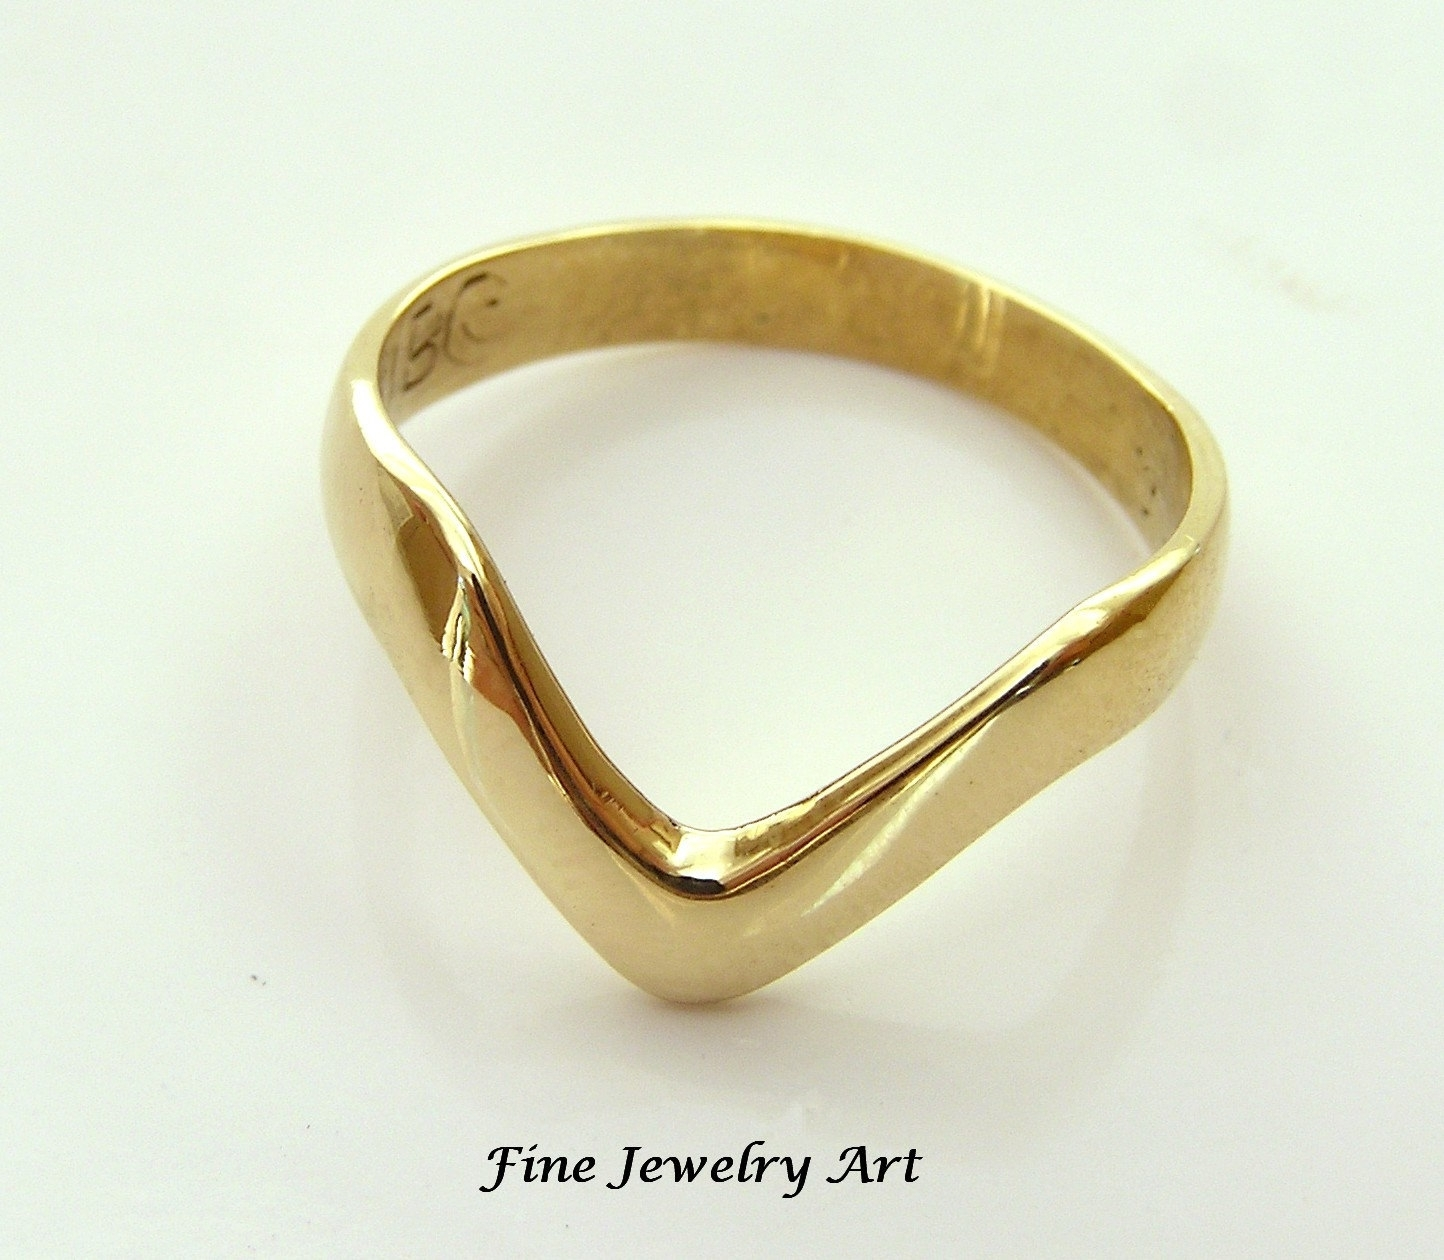 New Cheap Wedding Rings With Regard To Most Up To Date Chevron Shaped Rings (View 5 of 15)